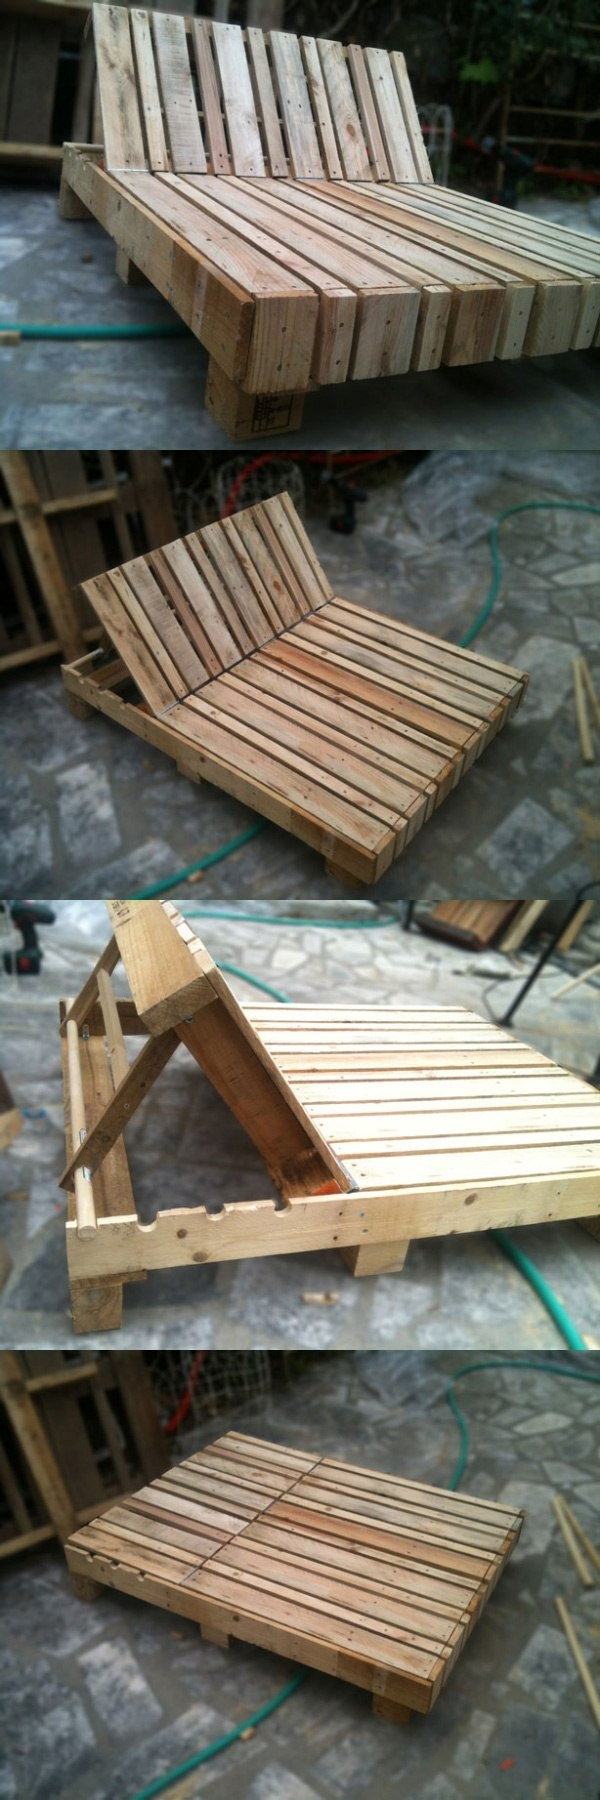 Creatively Recycling Ideas-Top 20 Pallet Beds -homesthetics (17)